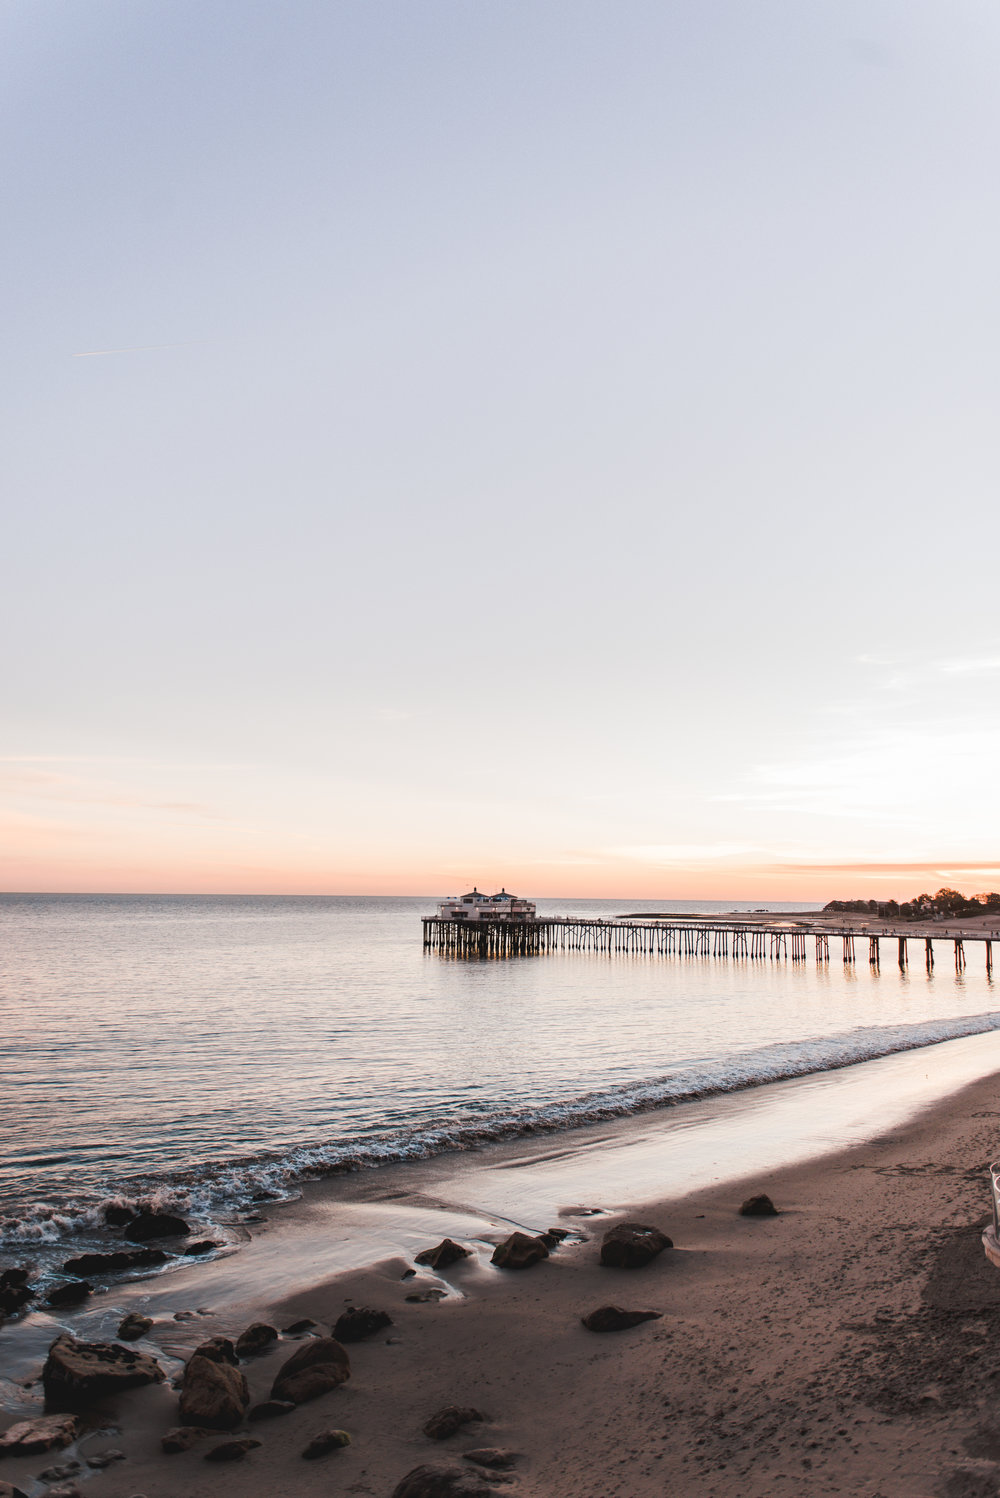 Malibu-Beach-Inn-By-Lisa-Linh